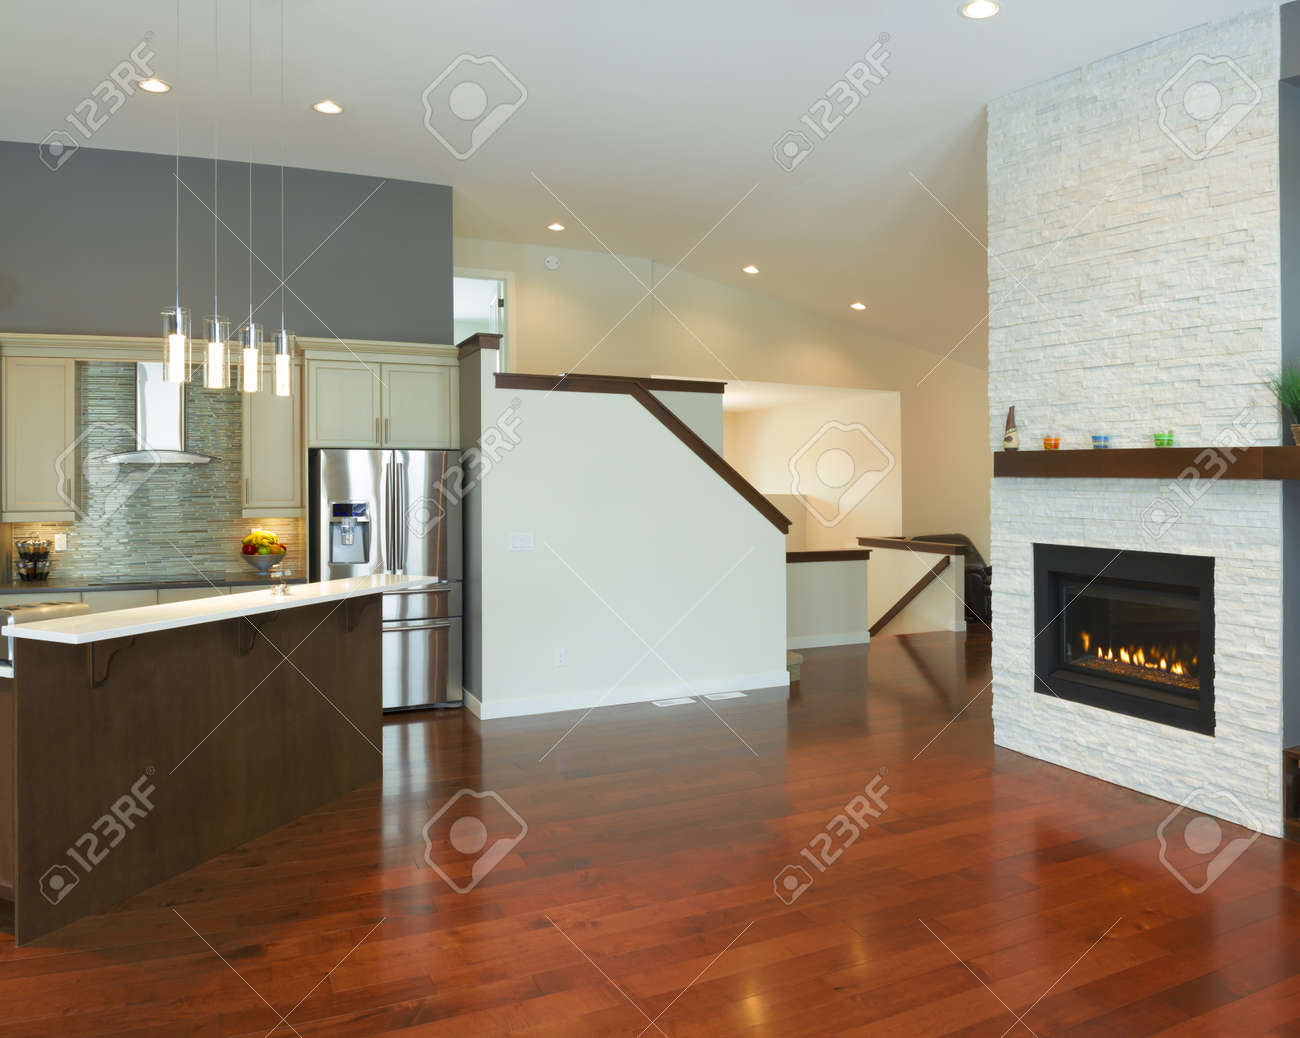 Interior kitchen design with fireplace in a new house Stock Photo - 17533144